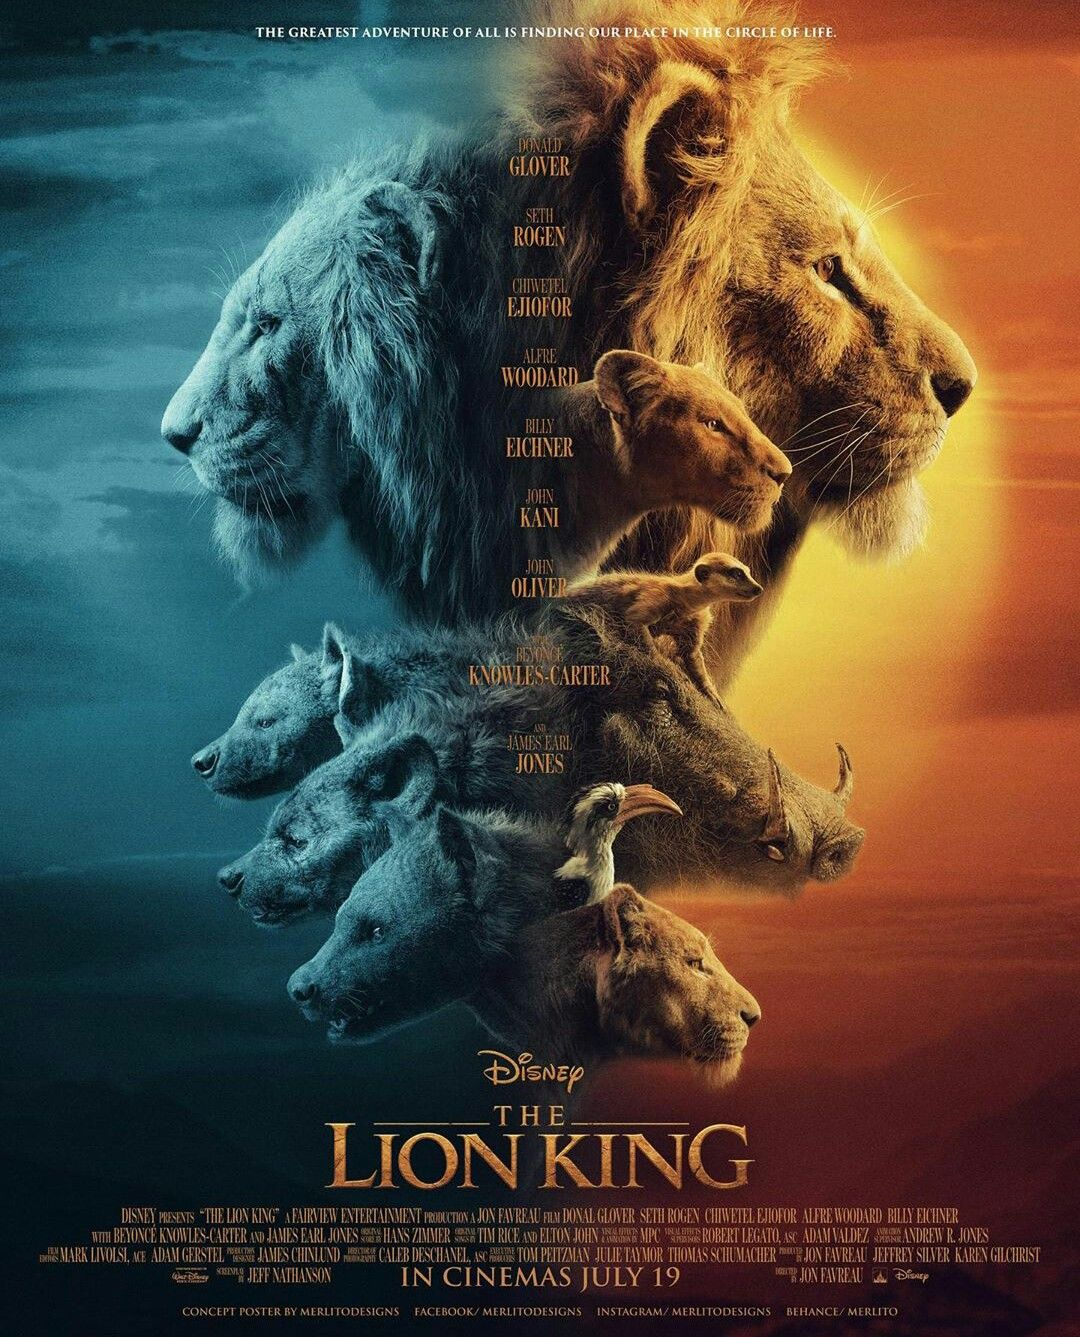 Review movie The Lion King childhood of many people